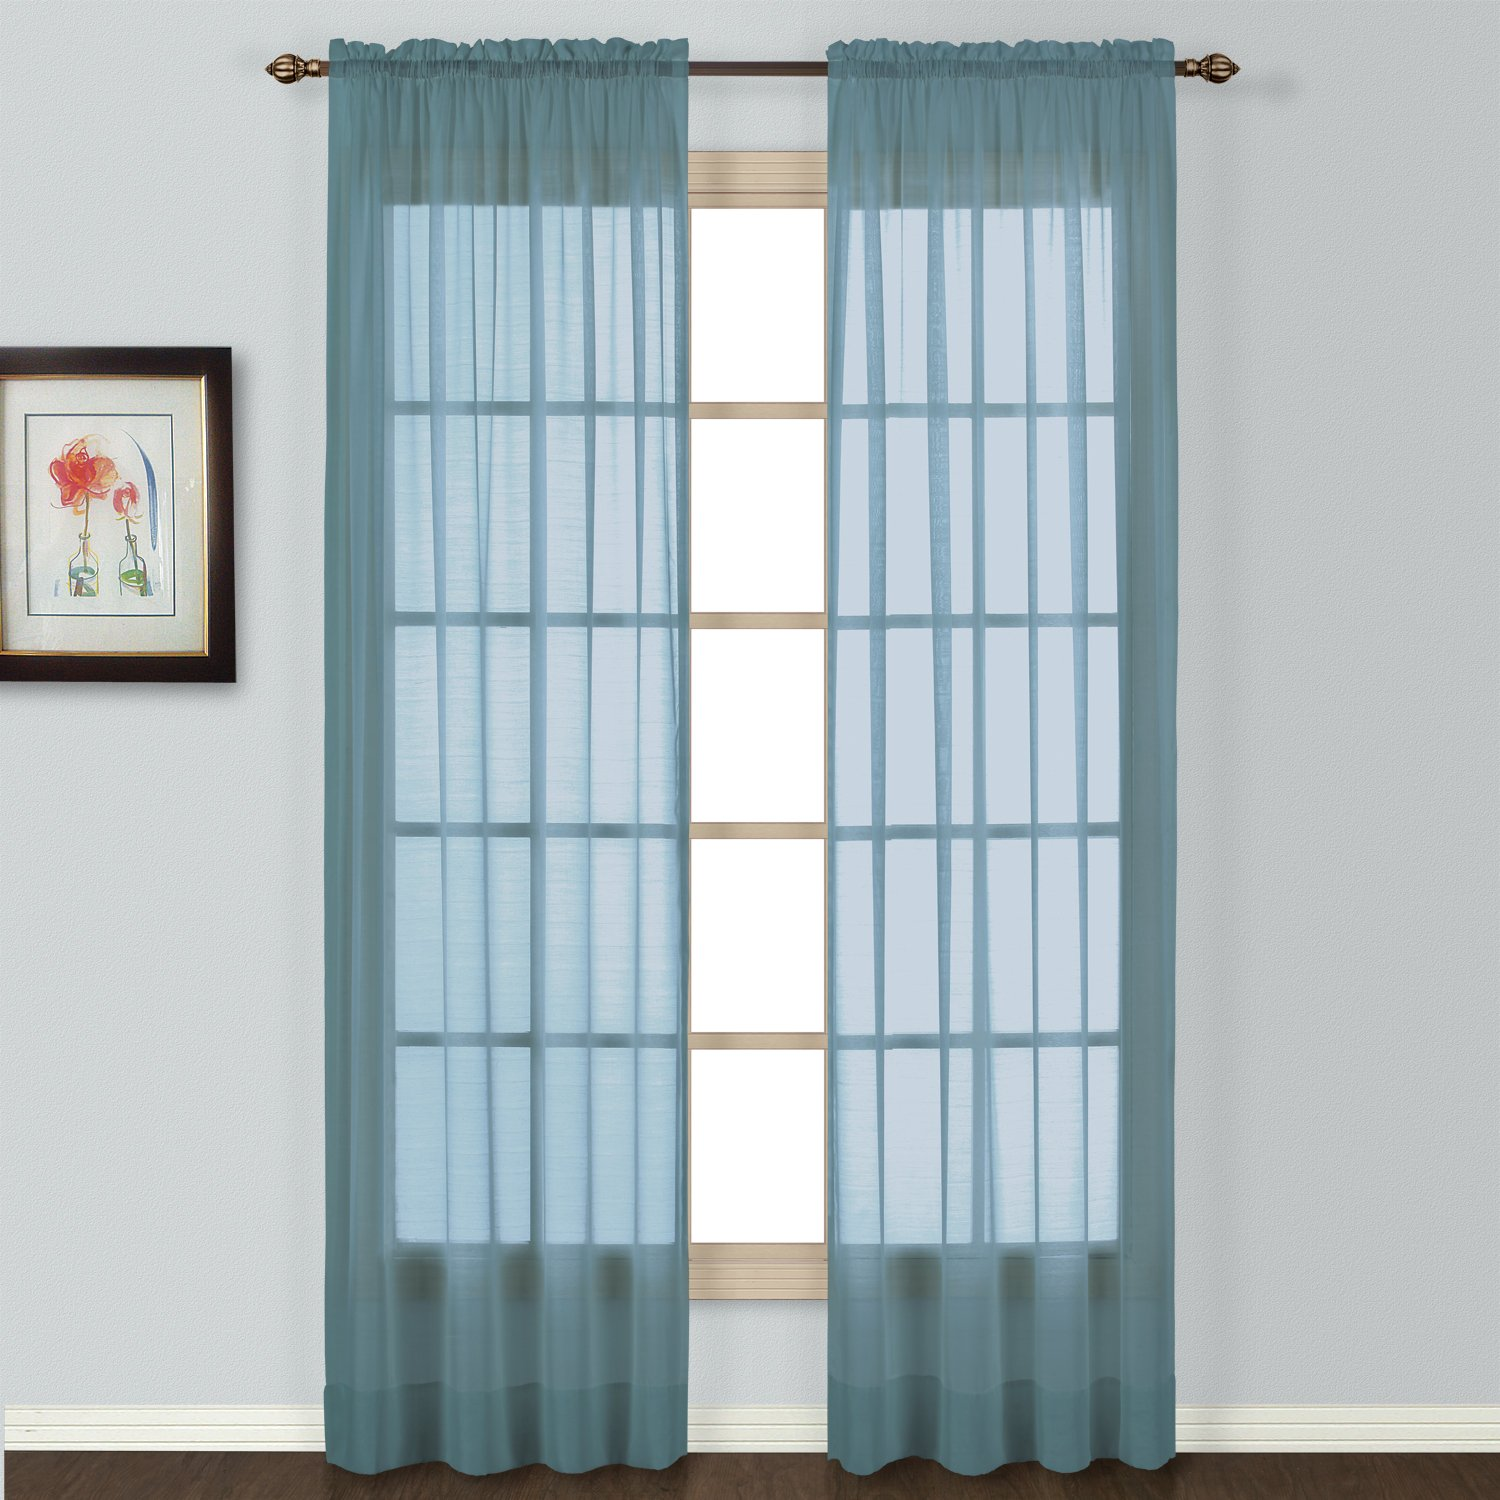 American Curtain and Home Semi-Sheer Window Curtain, 54-Inch by 63-Inch, Blue